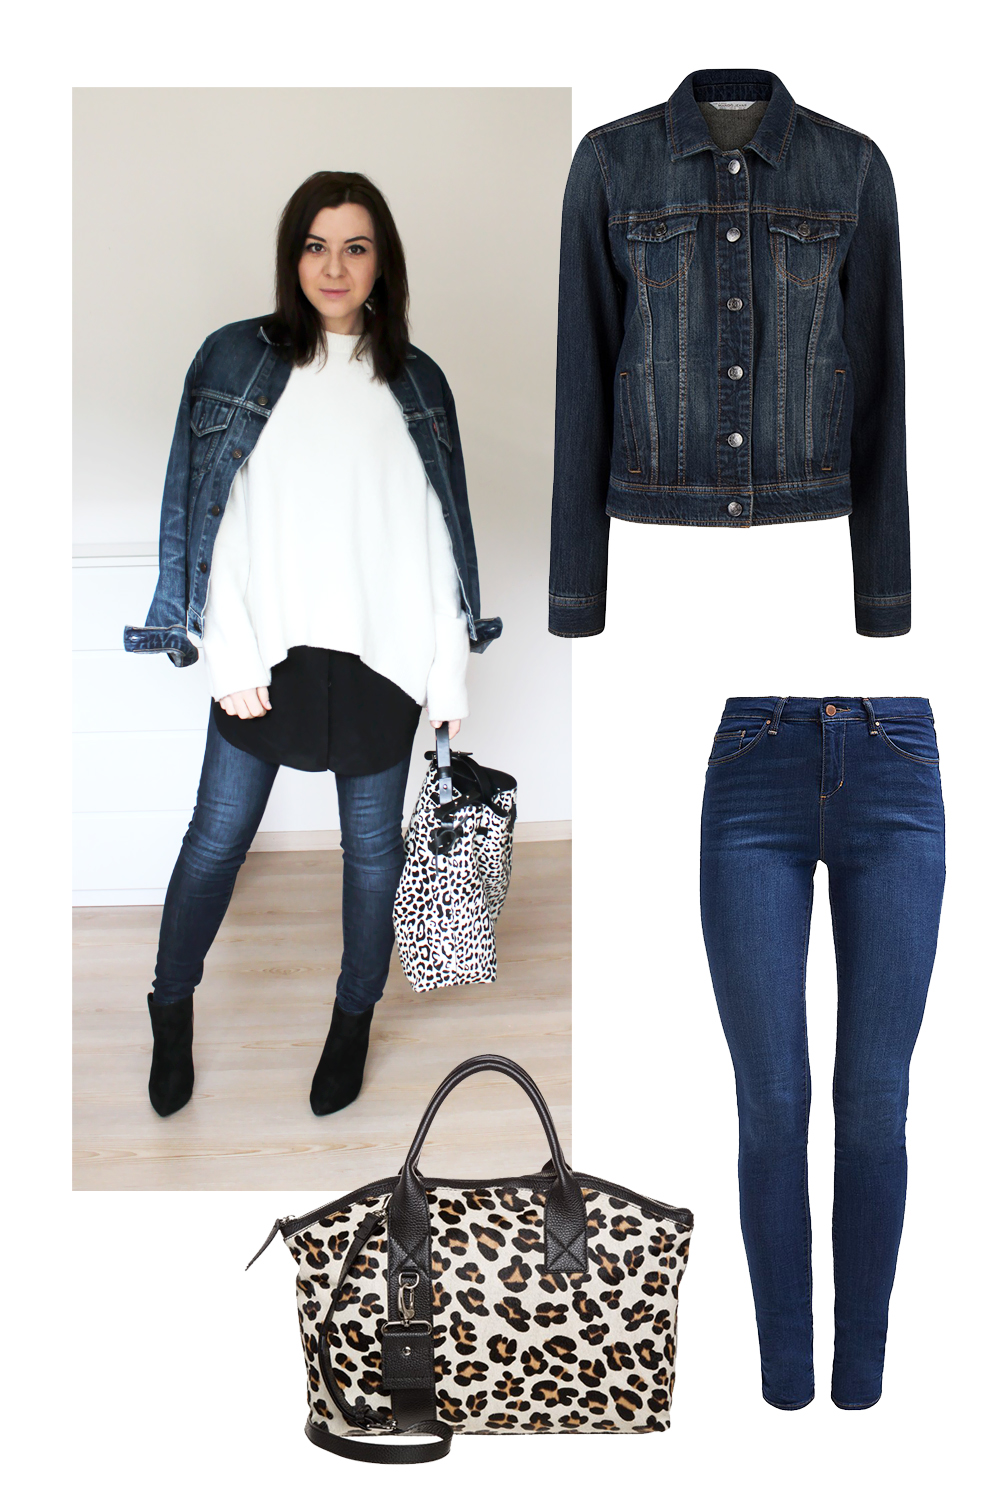 whoismocca, fashionblog tirol, fashionblog Österreich, weekly outfit review, high waist jeans zara, ankle boots zara, tasche animal print zara, jeansjacke levis vintage, layering, kleid COS